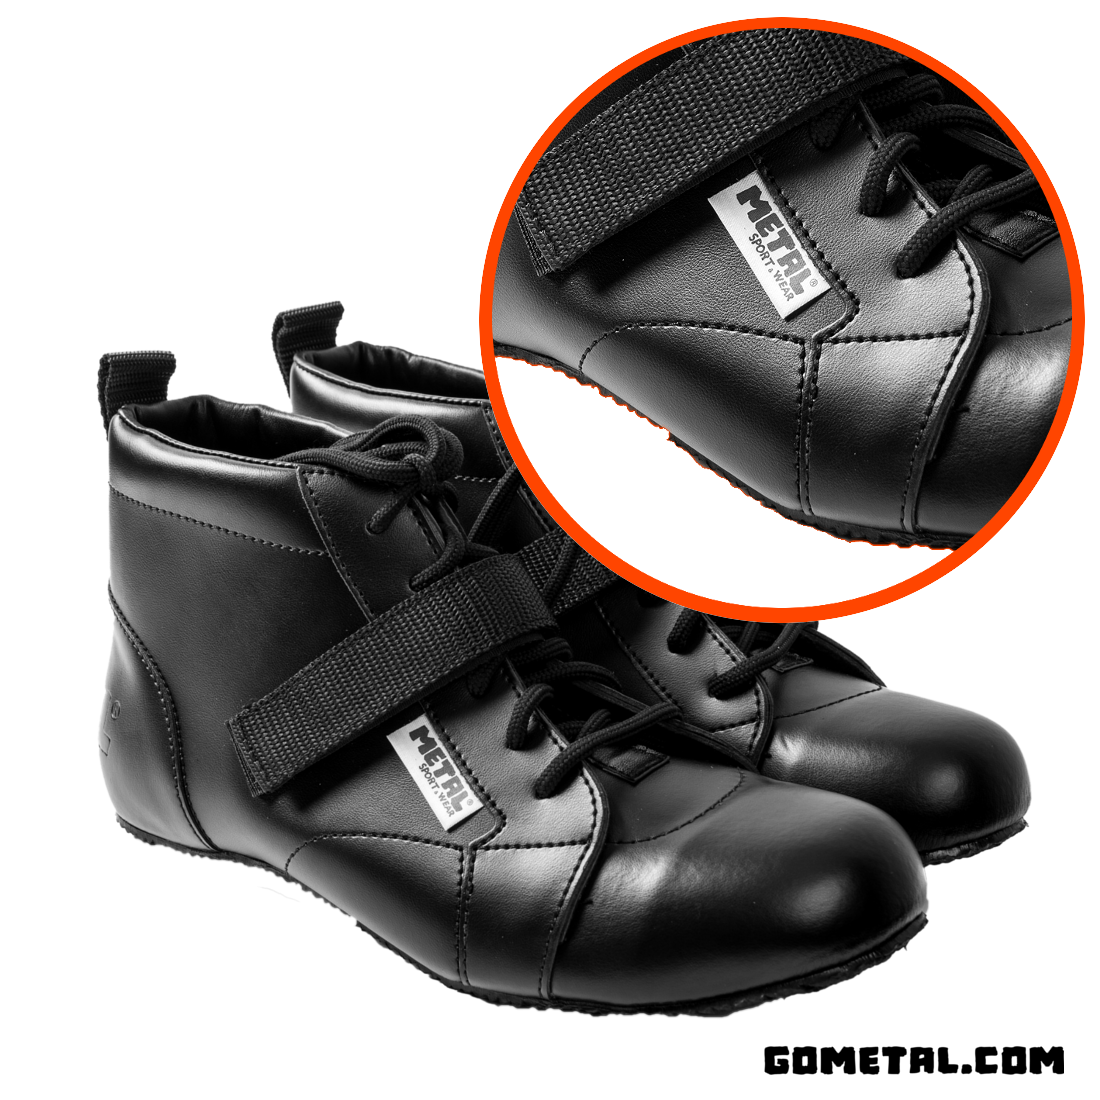 Metal Powerlifting Shoes Ipf Approved Gometal Com